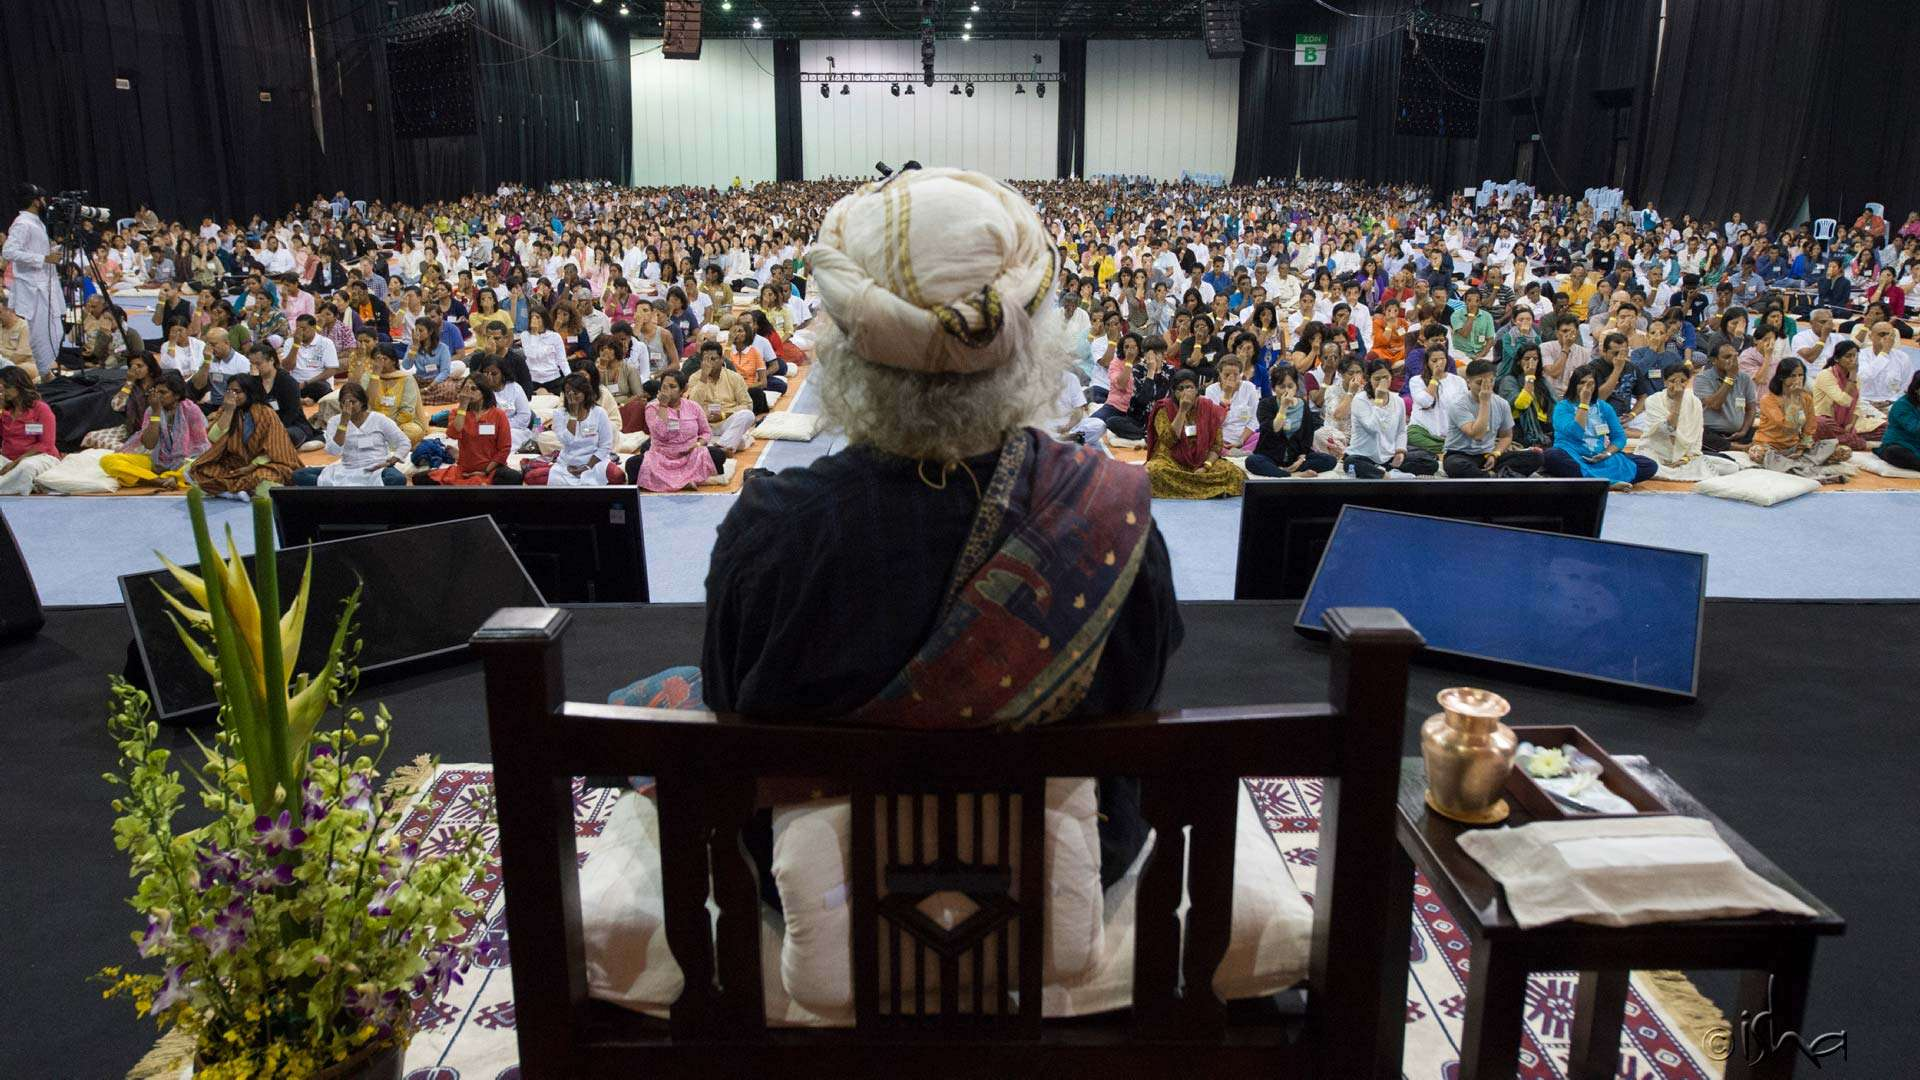 Sadhguru conducted the first Inner Engineering in Malaysia from 14 to 15 April